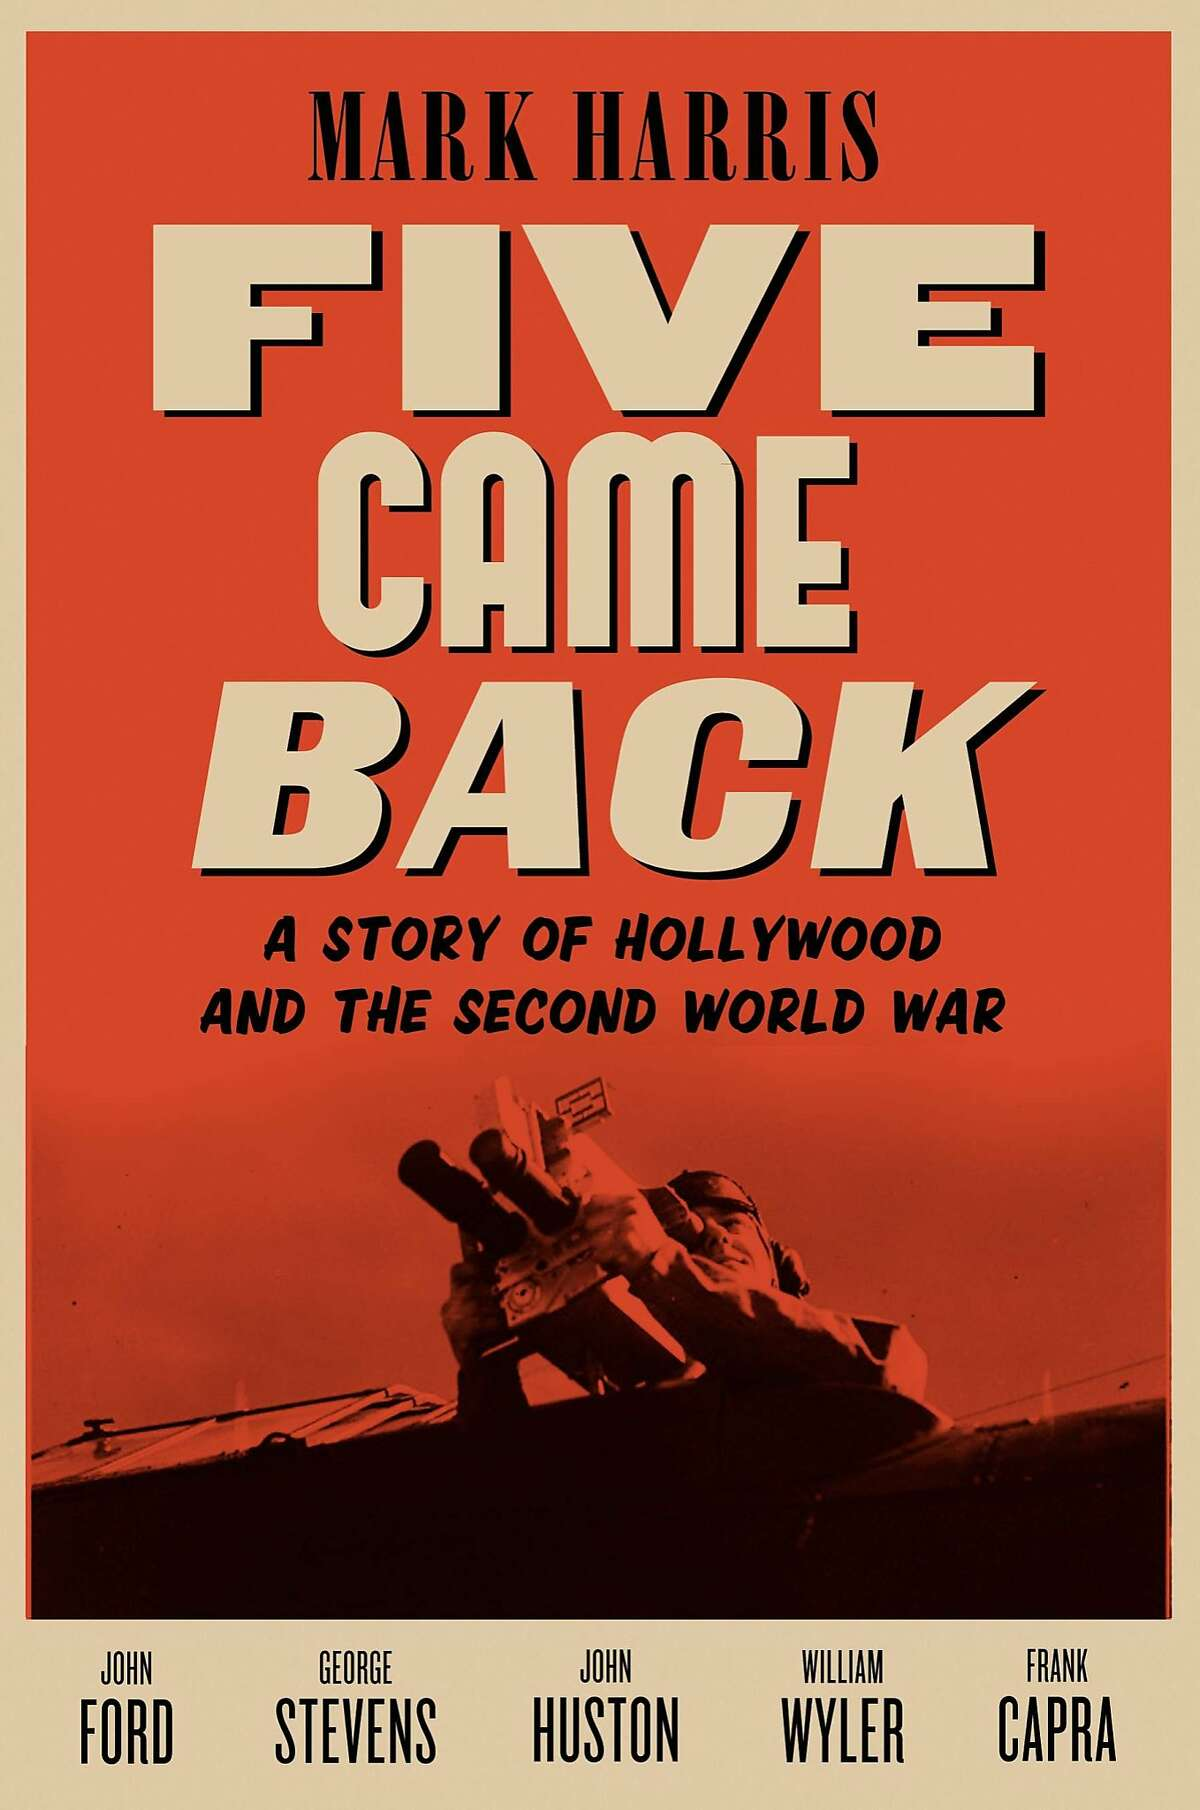 Five Came Back: A Story of Hollywood and the Second World War, by Mark Harris